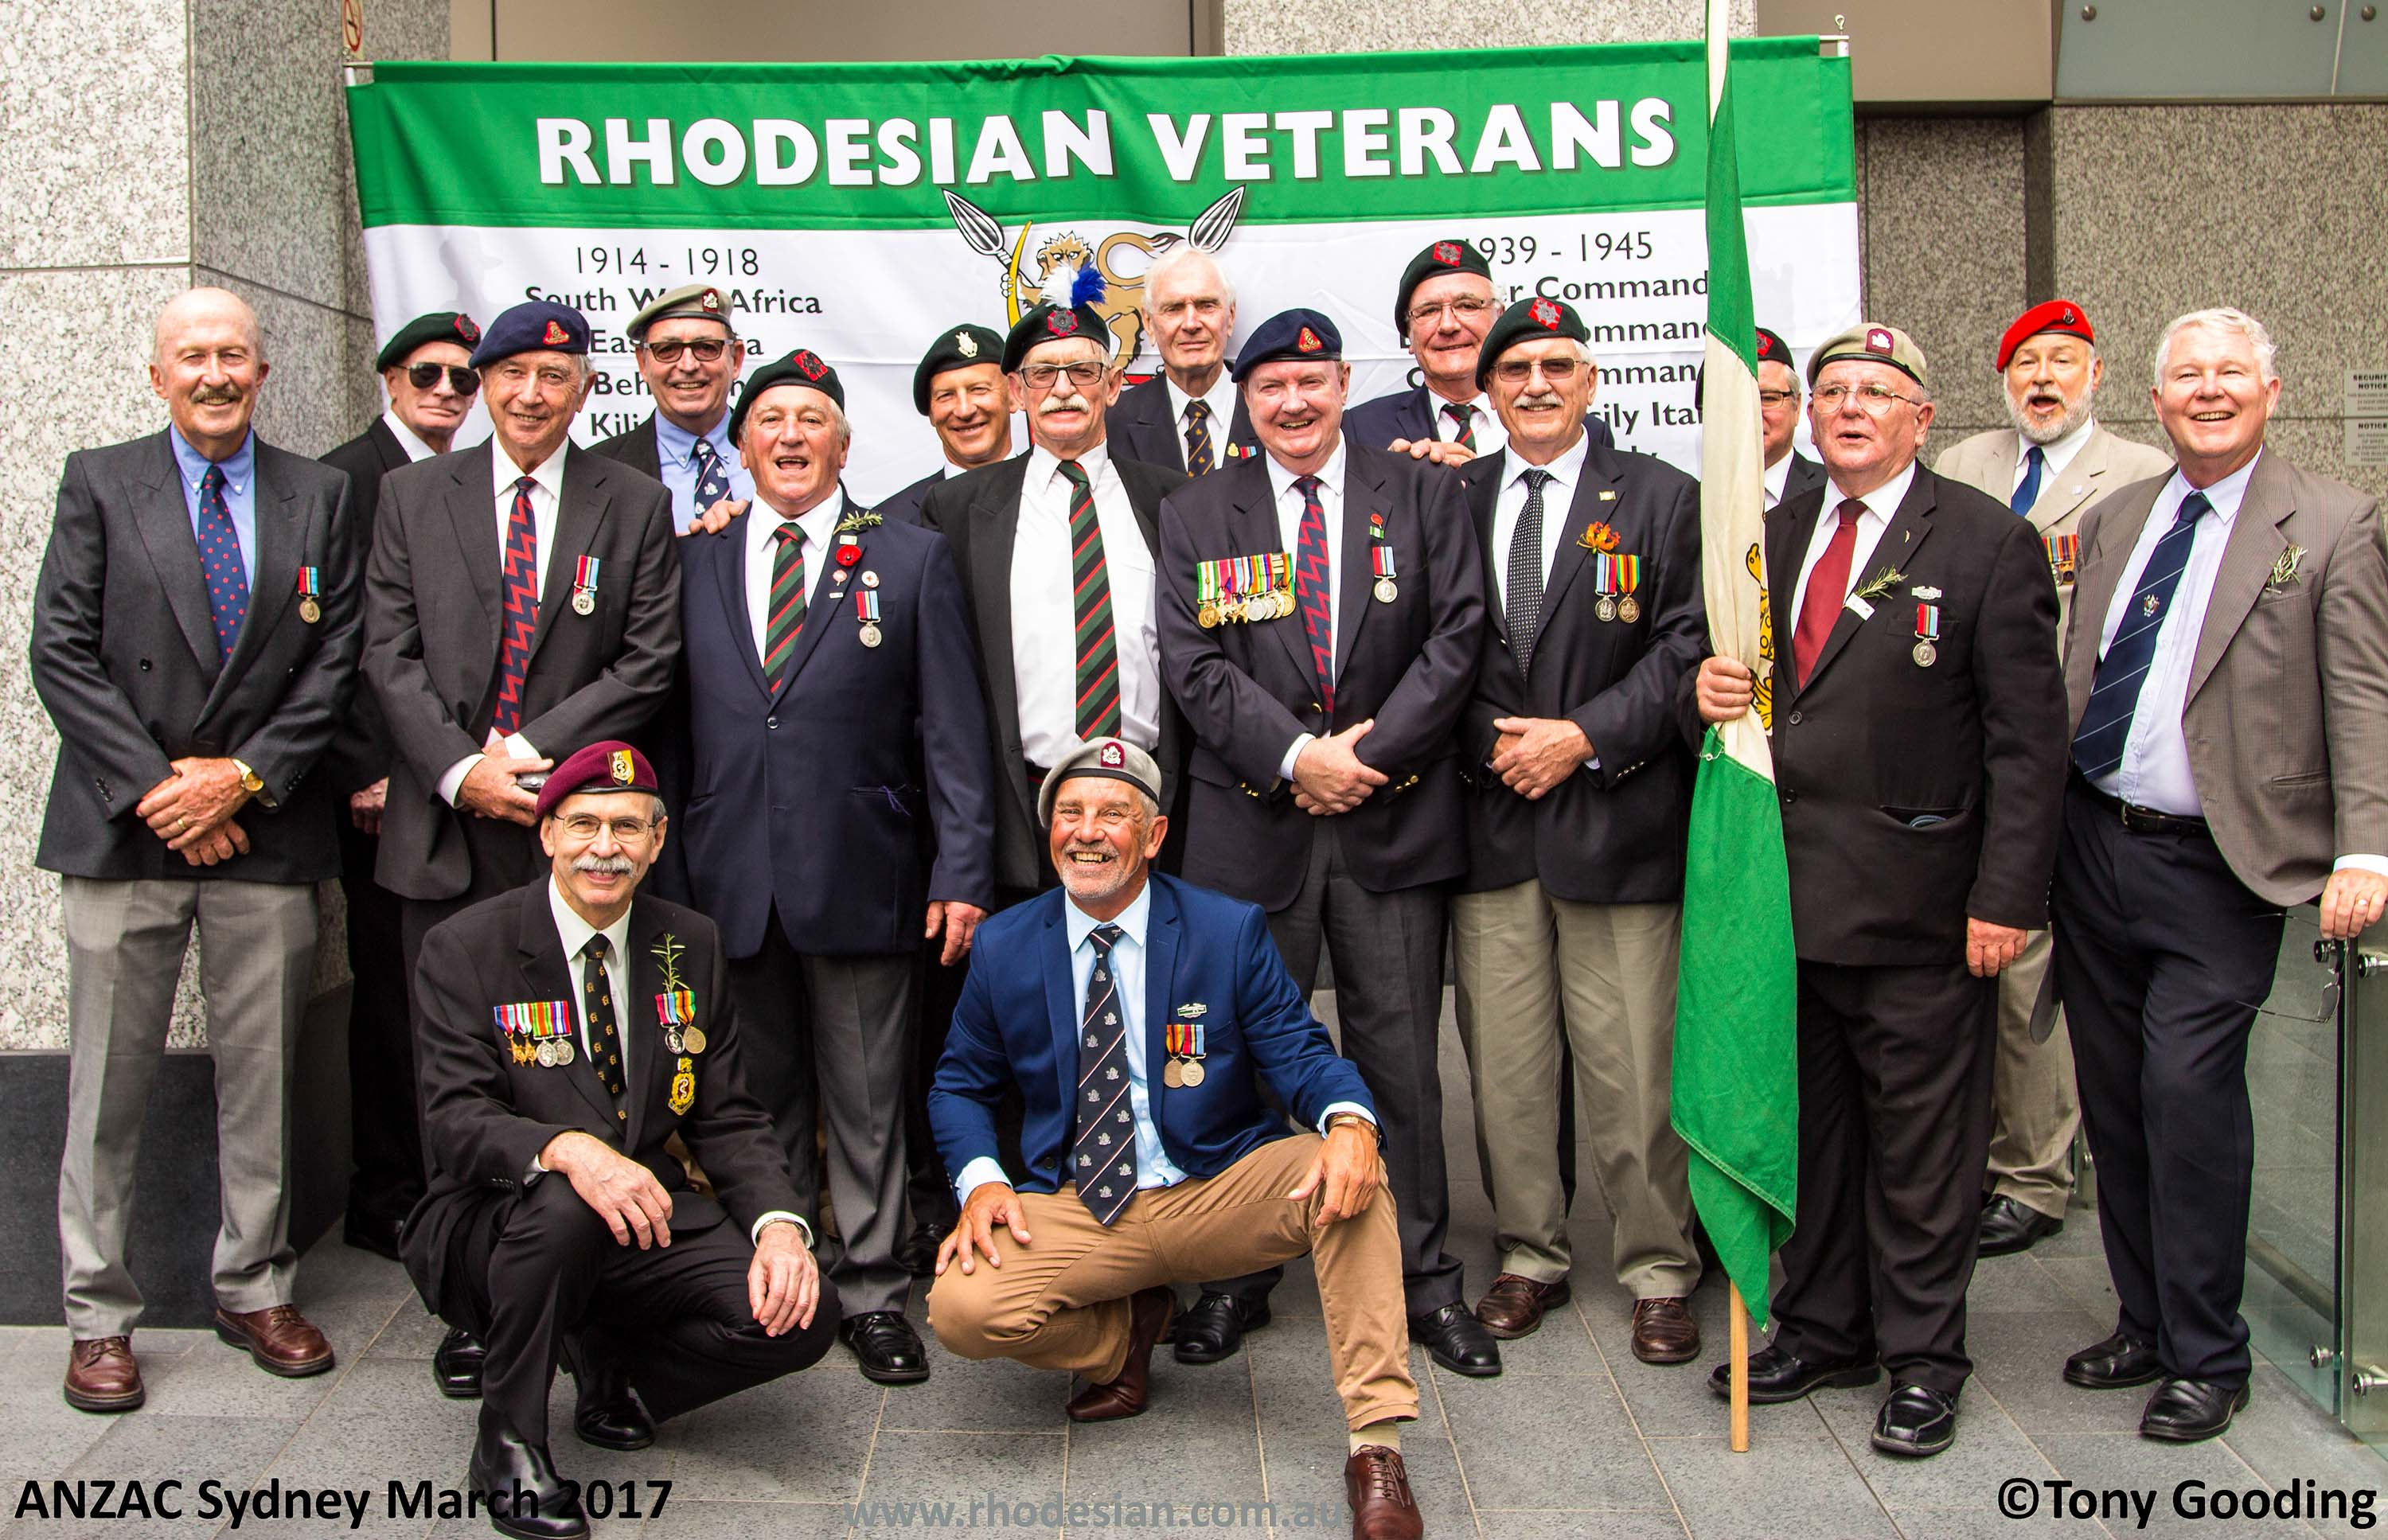 Rhodesian veterans after ANZAC Day March in Sydney in 2017